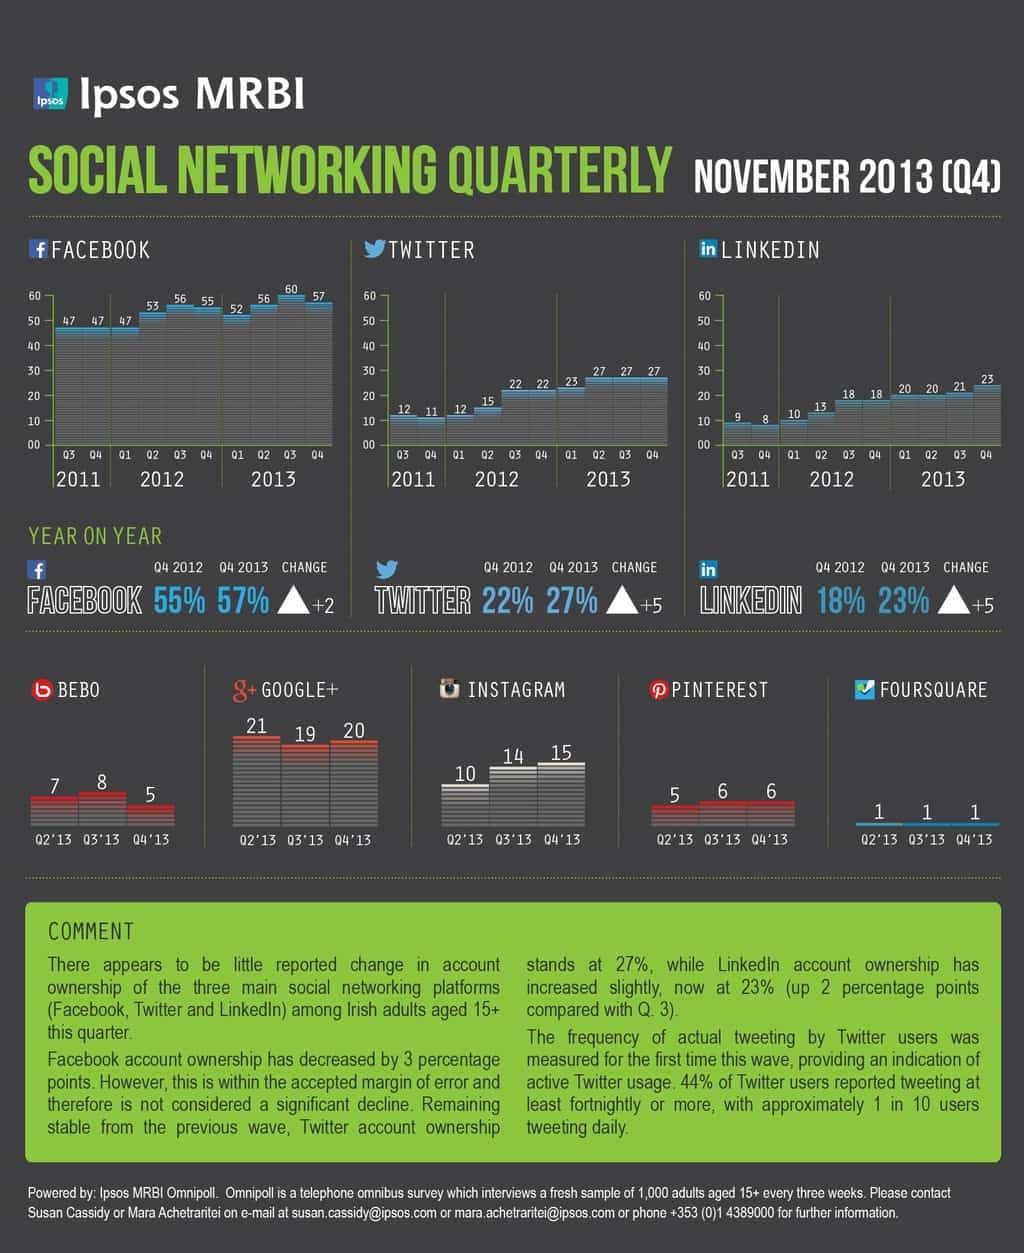 Social Media Use In Ireland – IPSOS MRBI Q4 2013 data